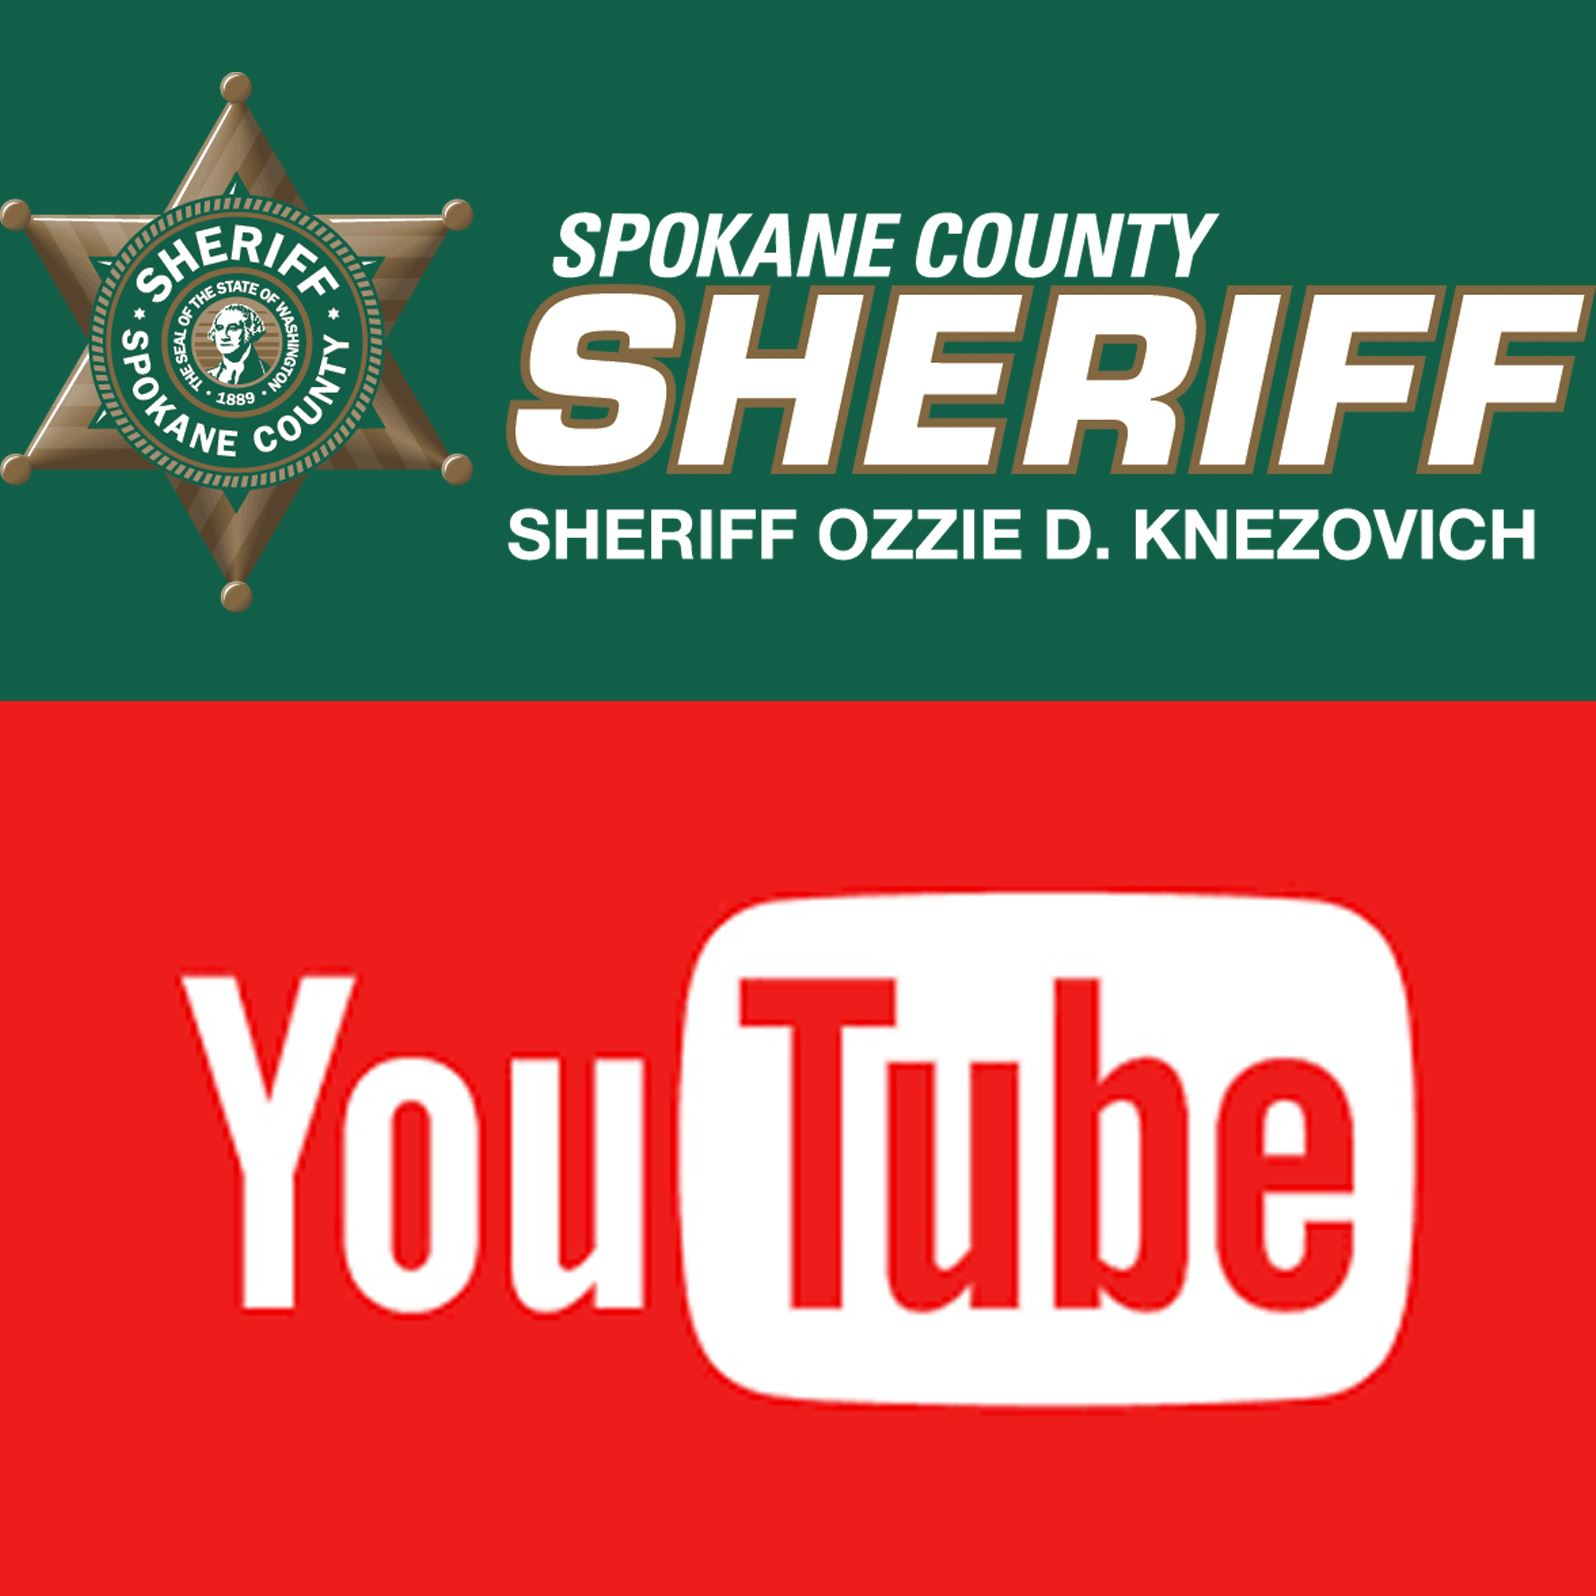 Sheriff's YouTube